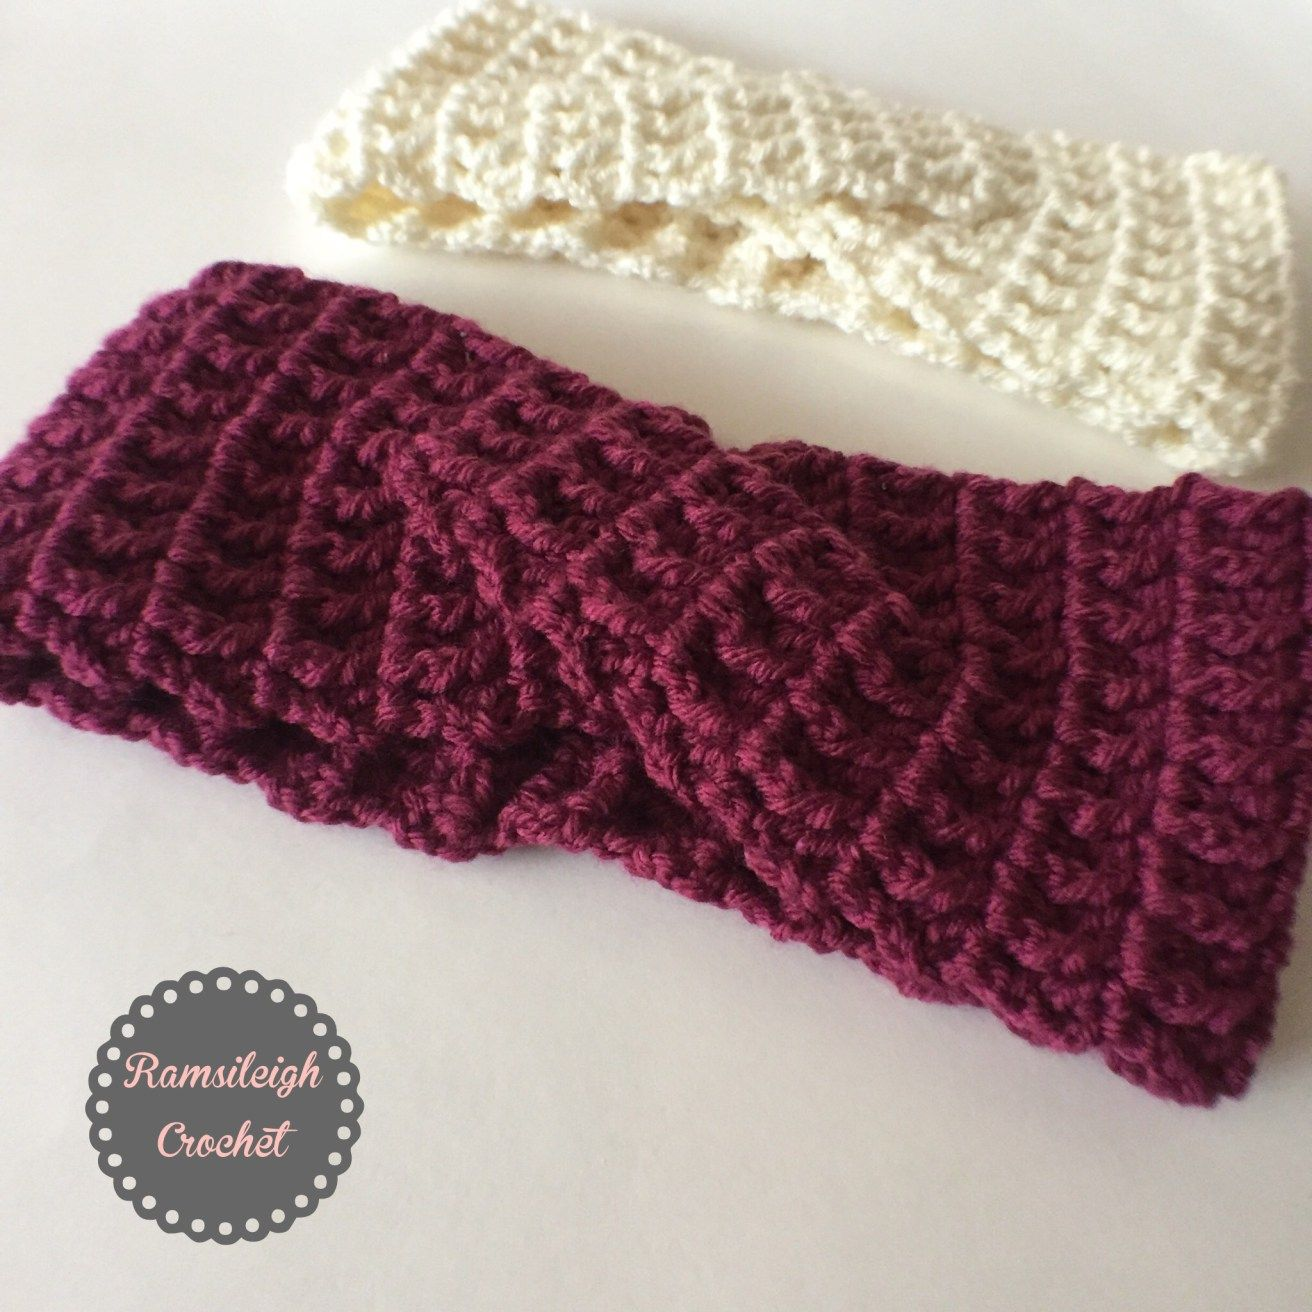 Twisted headband free pattern crochet pinterest twist free twisted headband crochet pattern by ramsileigh crochet bankloansurffo Choice Image